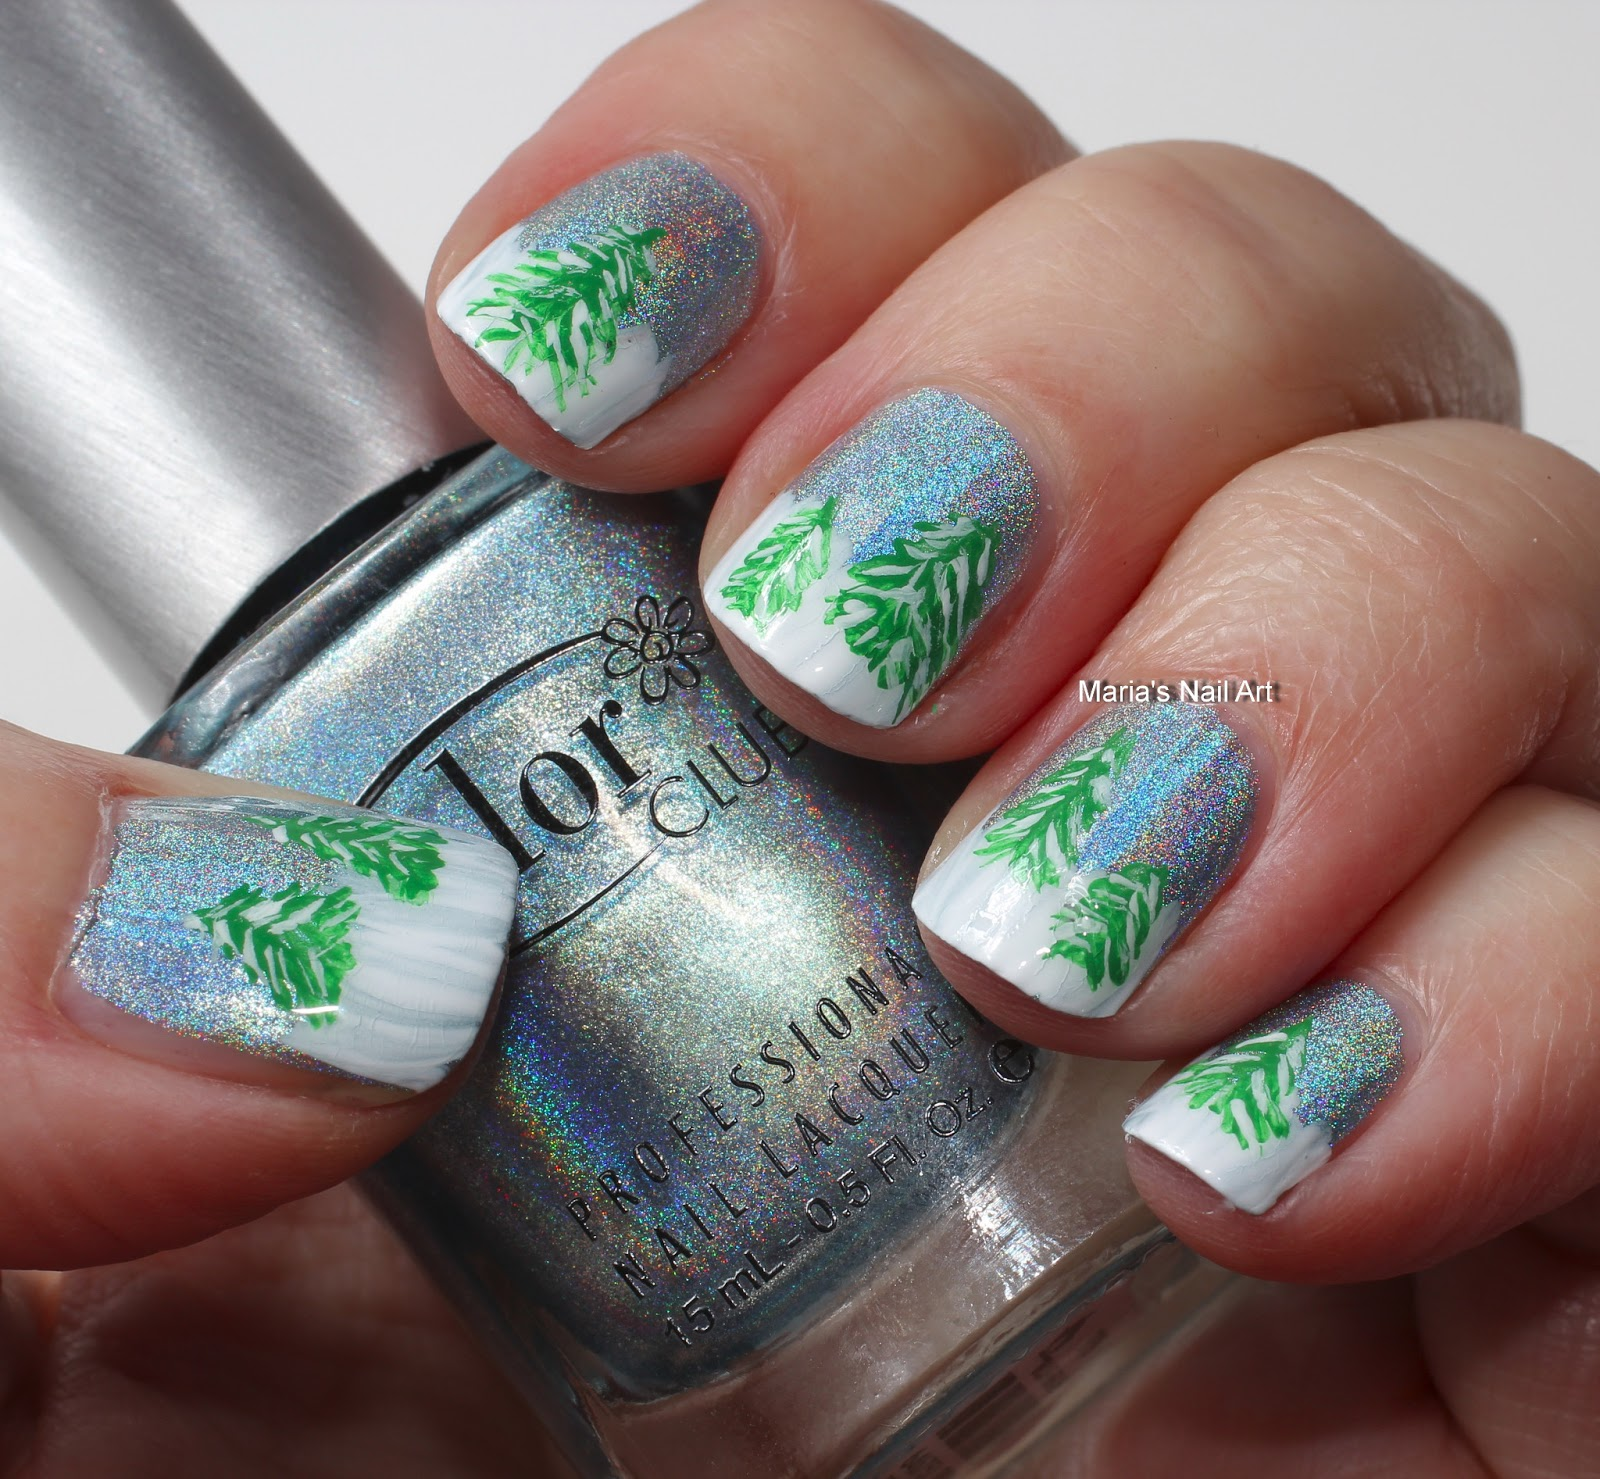 Piggieluv Freehand Stairway To Heaven Nail Art: Marias Nail Art And Polish Blog: The Holographic Sky